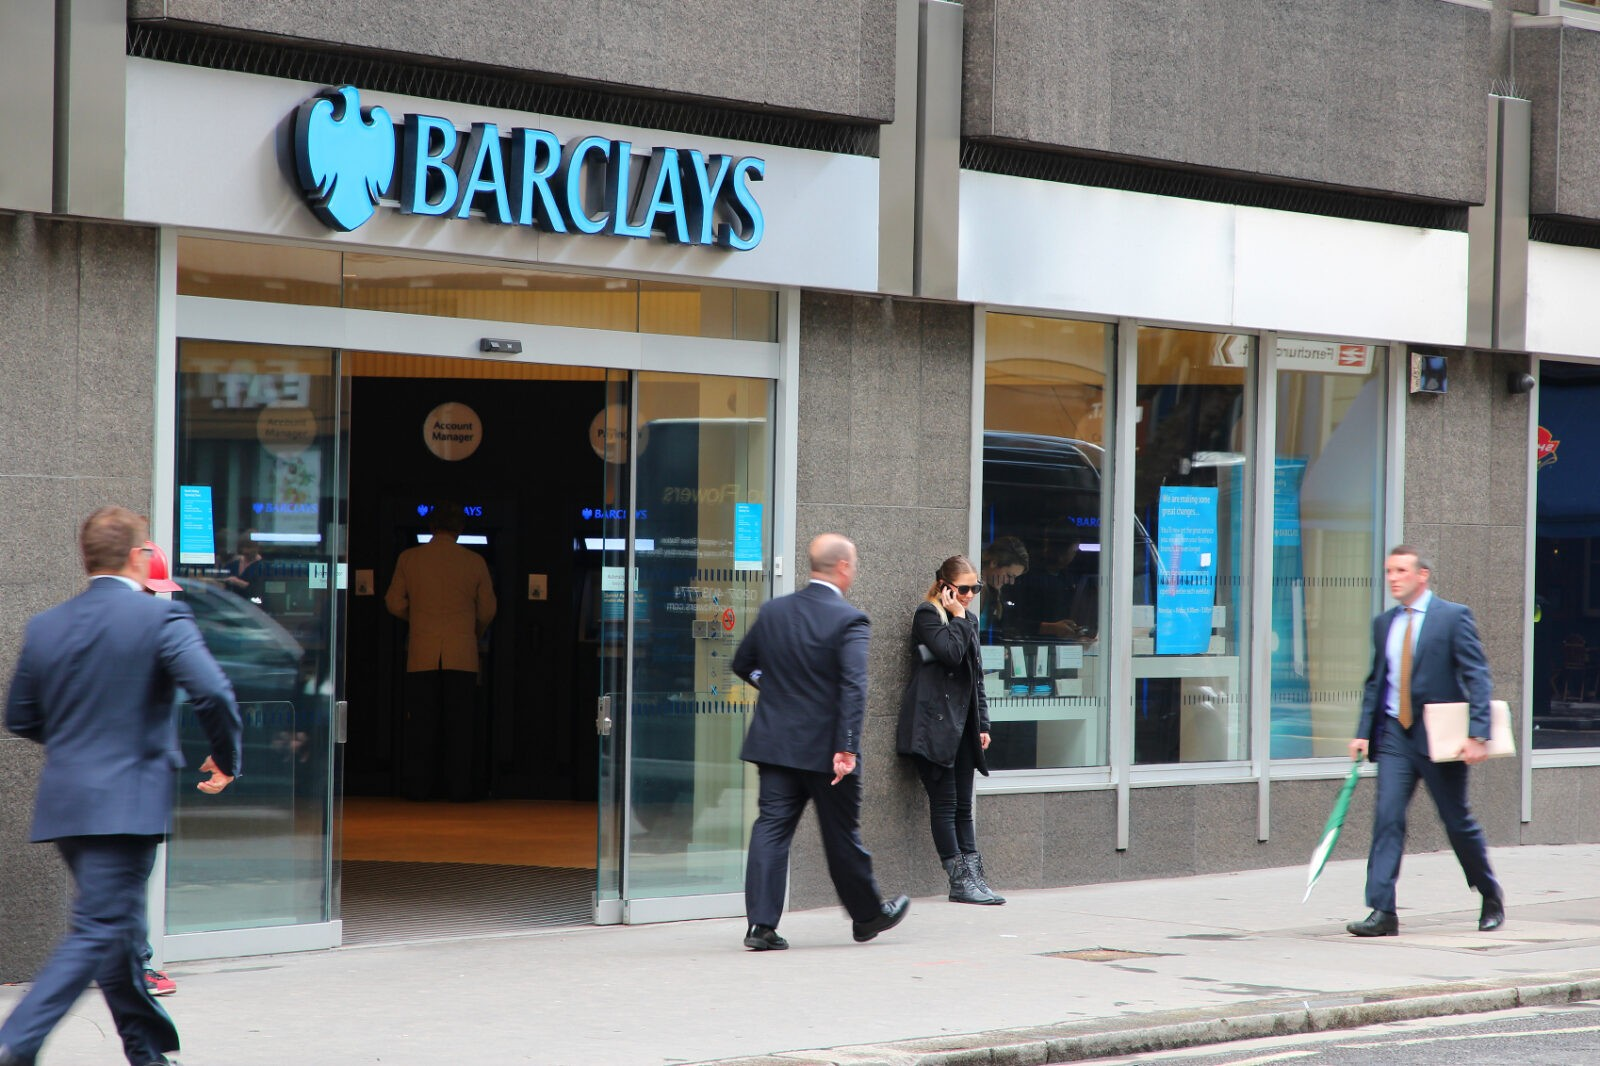 london branch of barclays bank